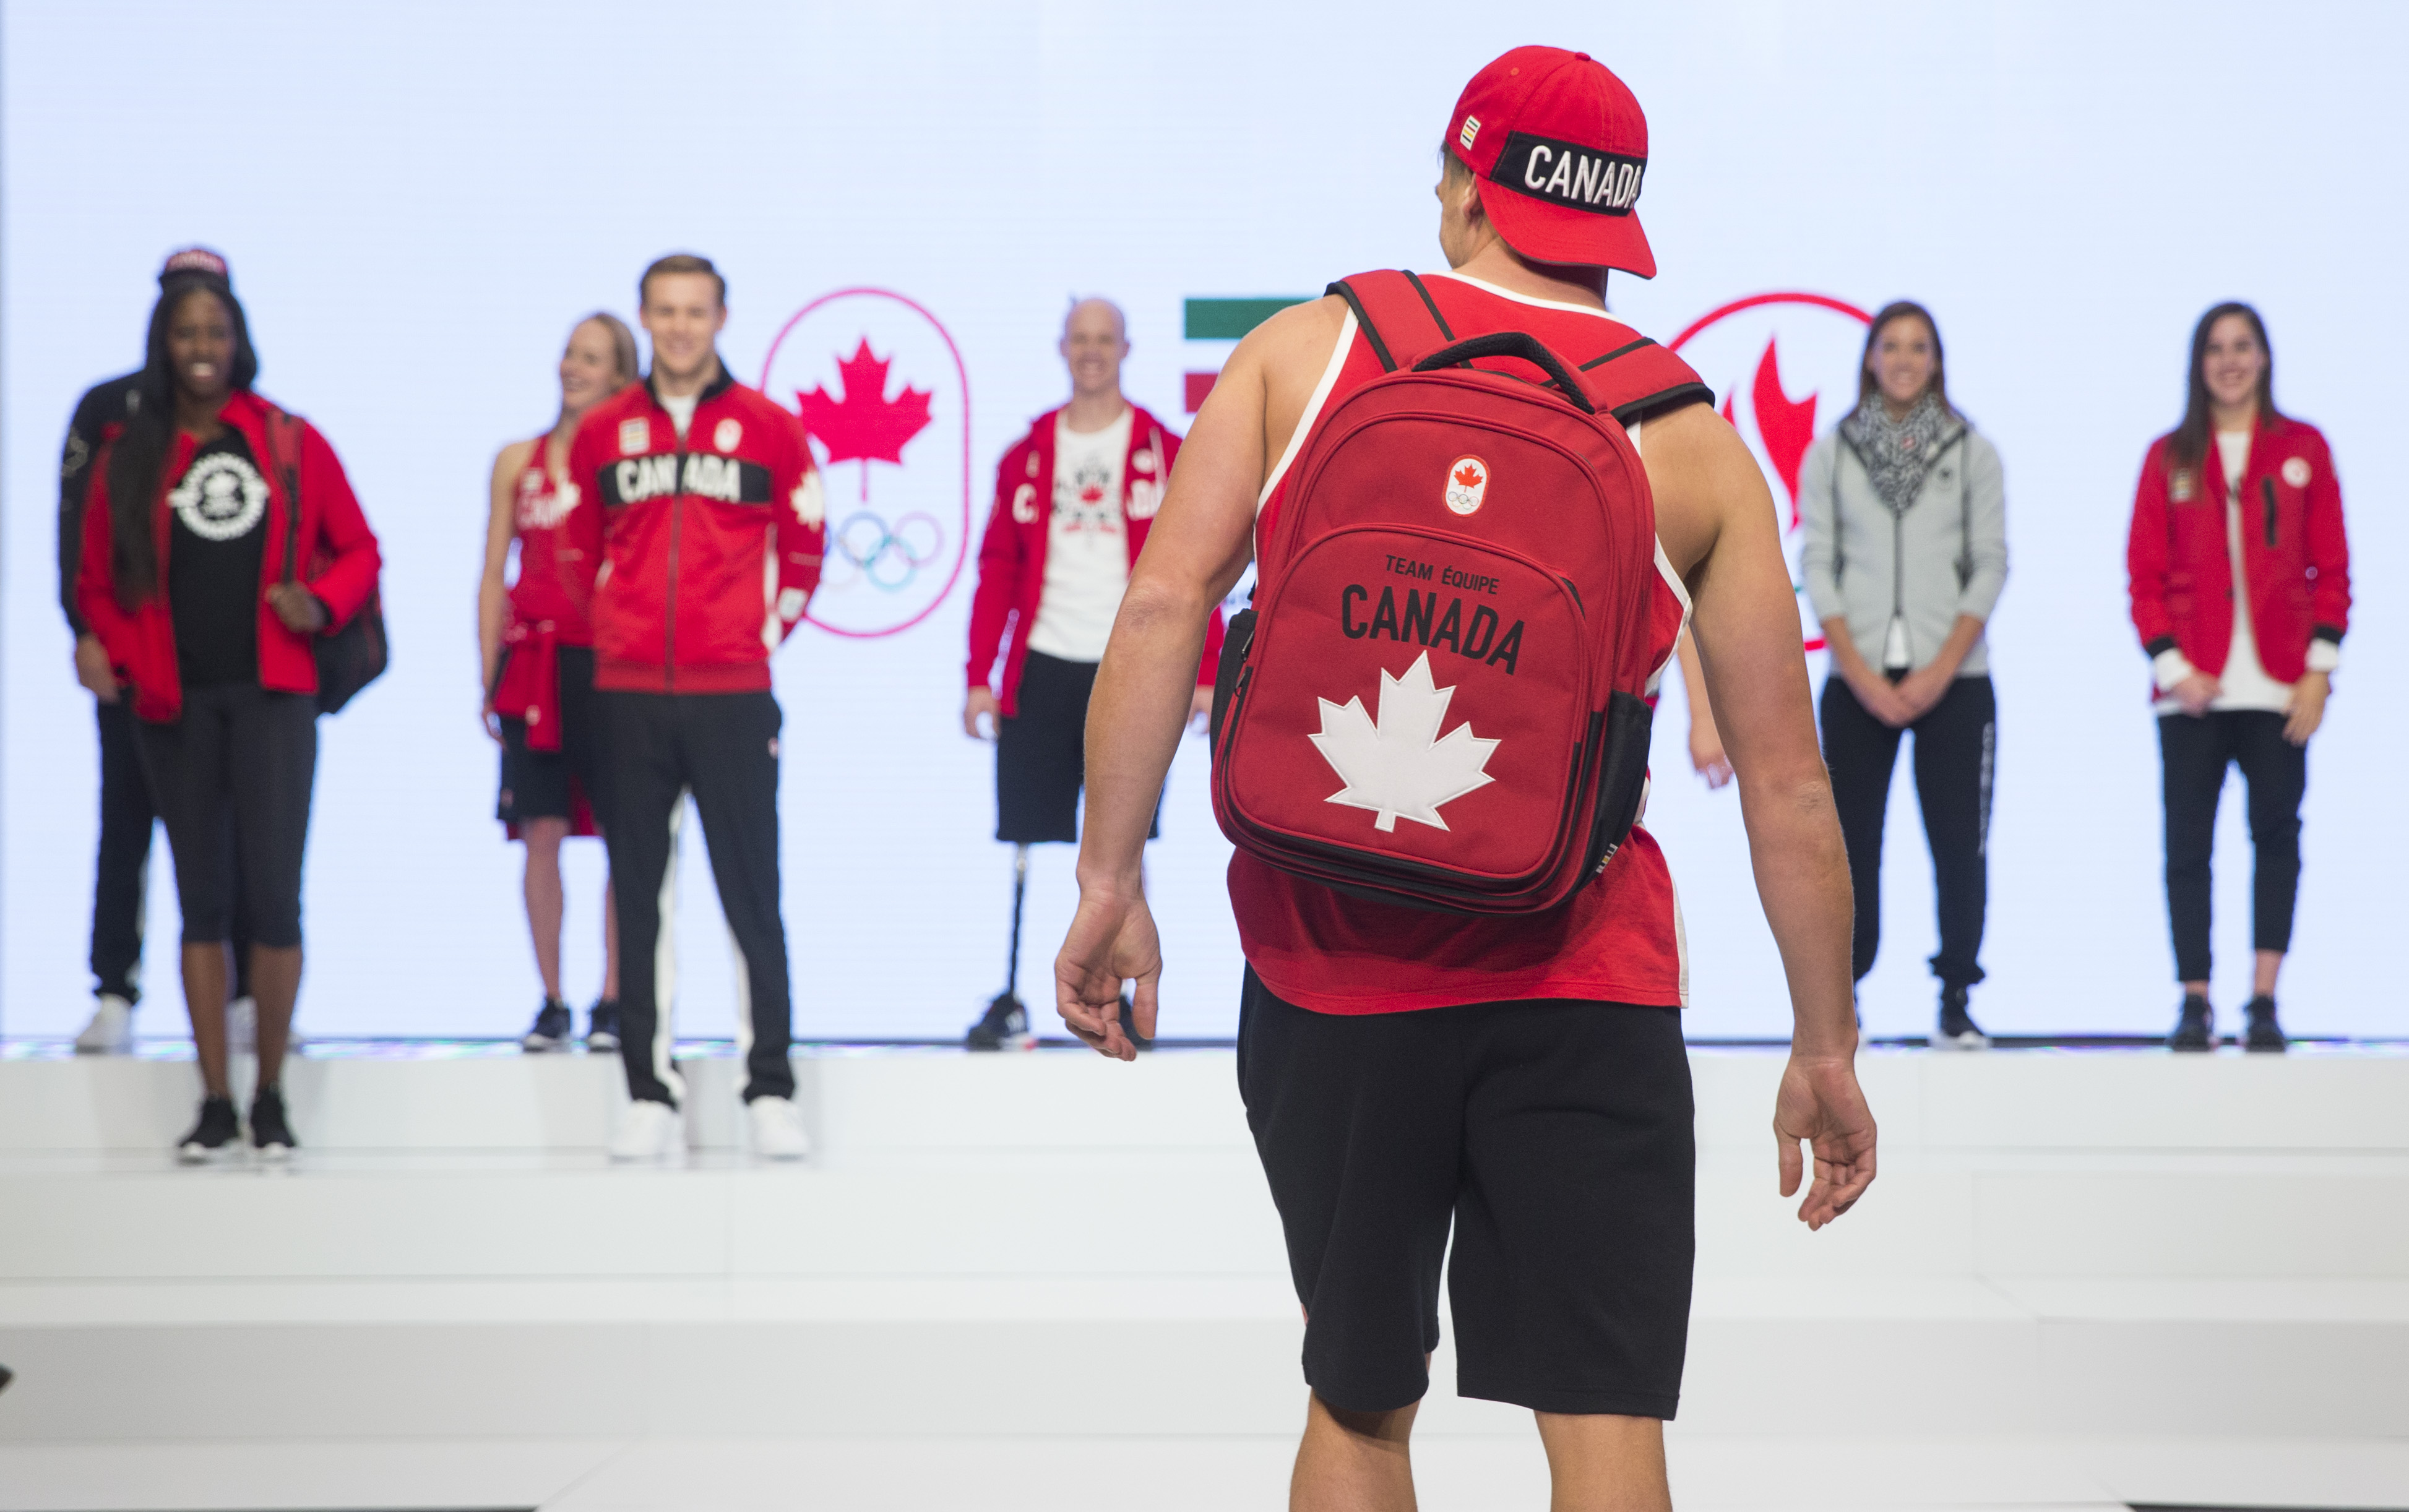 Image: Mark Blinch, Canadian Olympic Committee